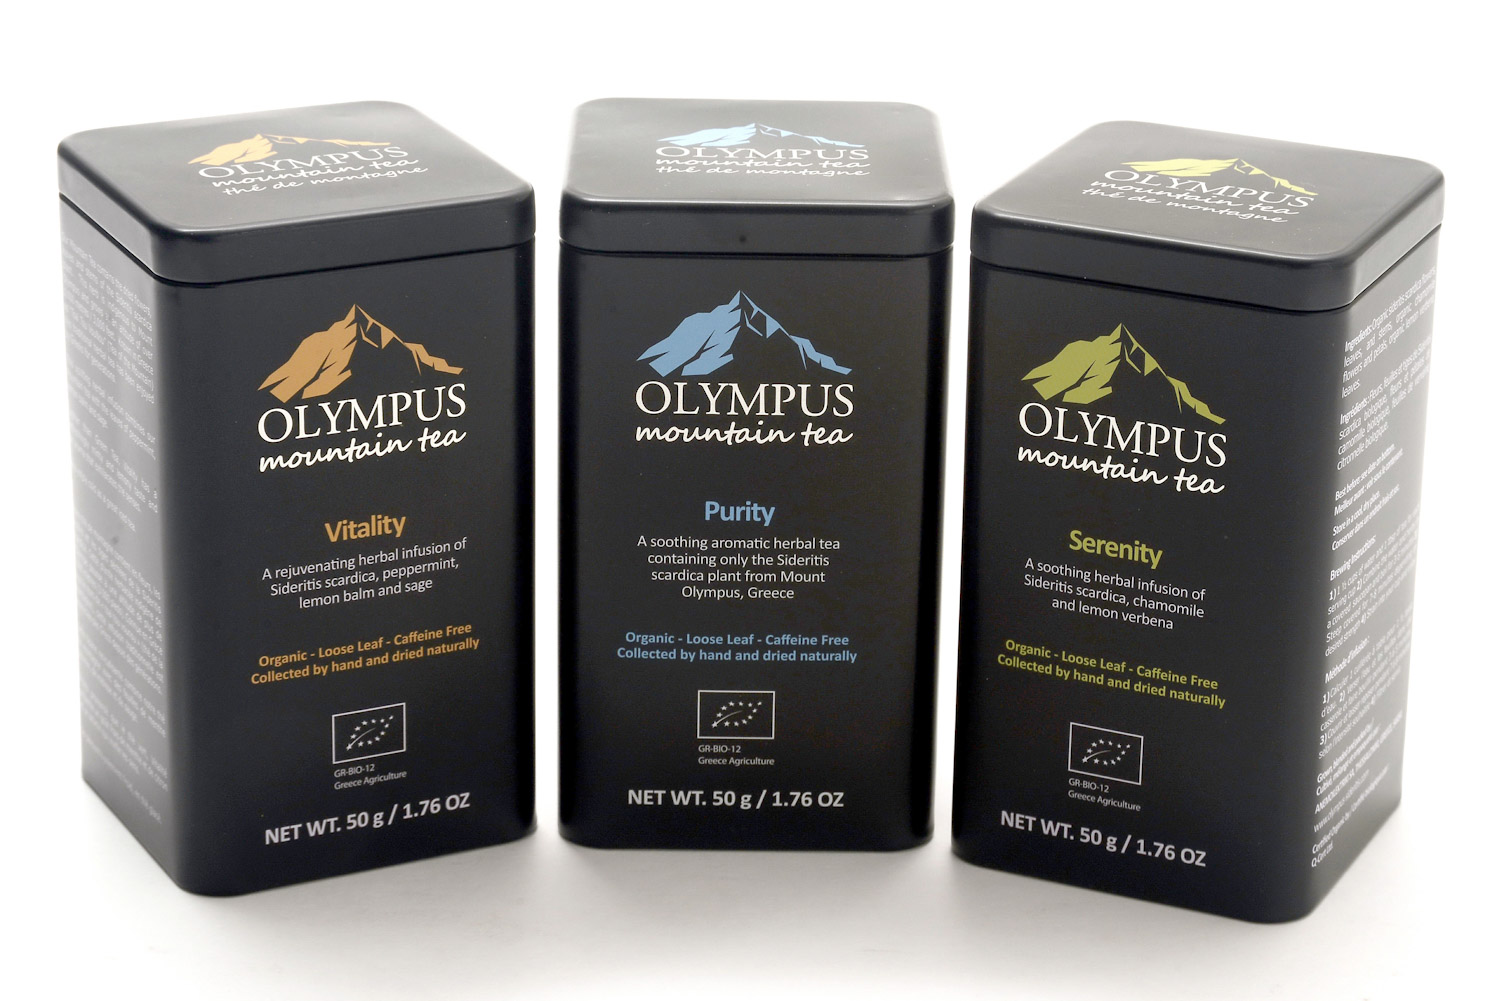 Olympus Mountain Tea Collection